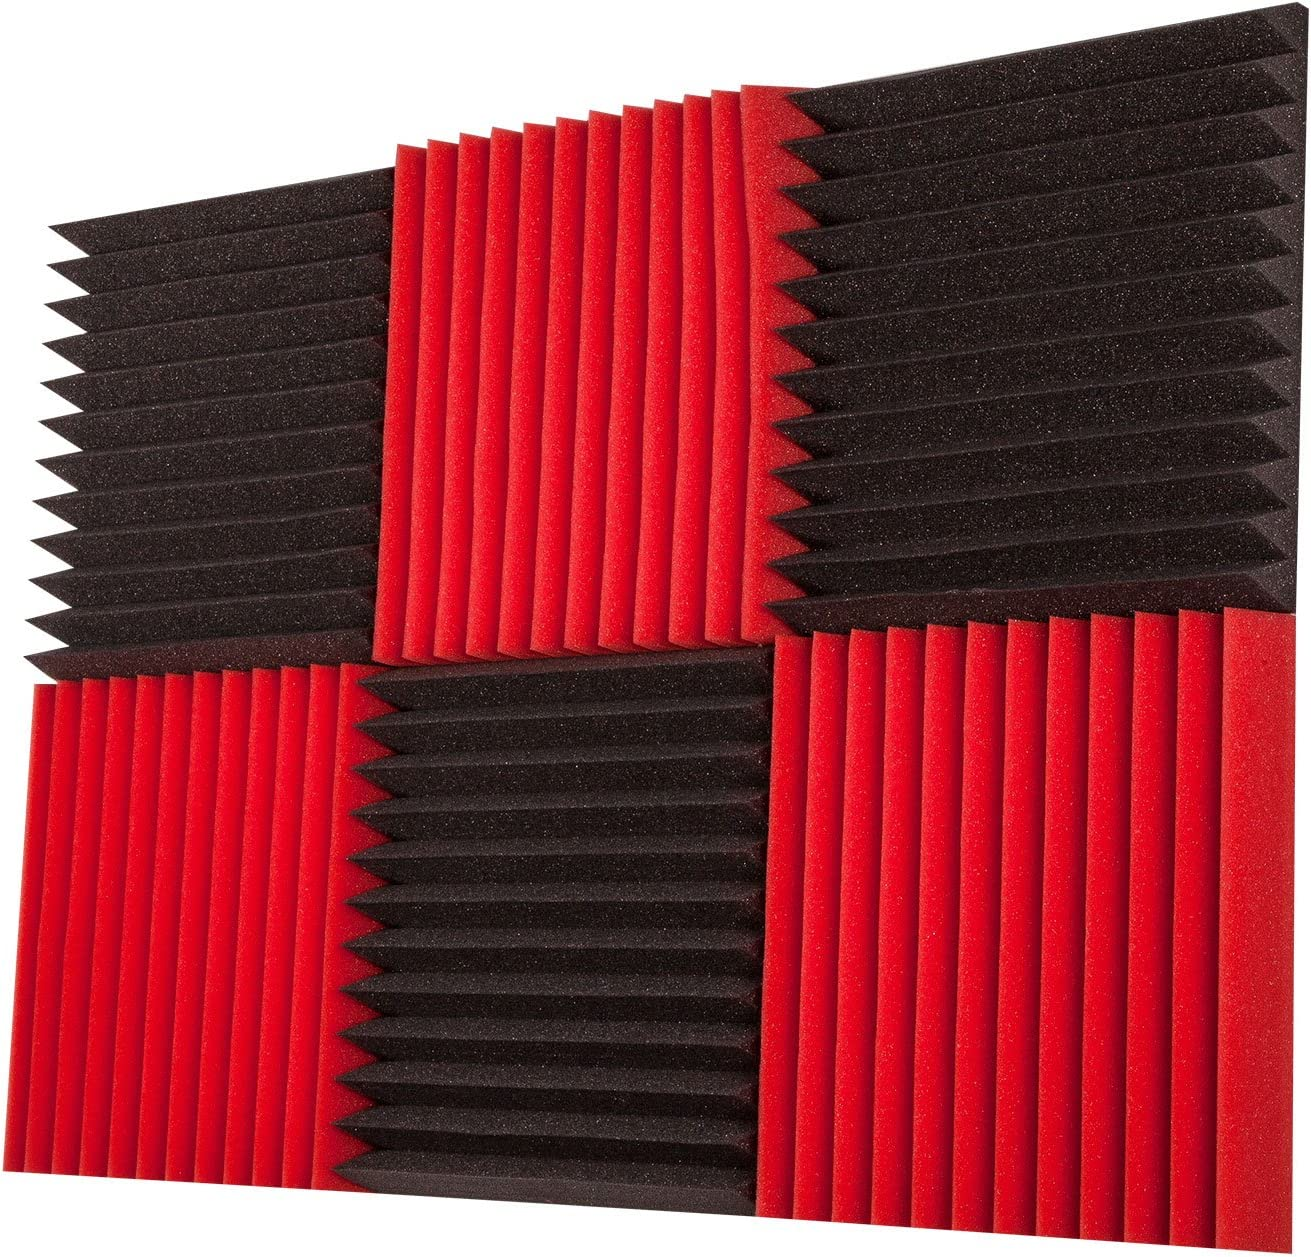 "Foamily 6 Pack- Red/Charcoal Acoustic Panels Studio Foam Wedges 2"" X 12"" X 12"""